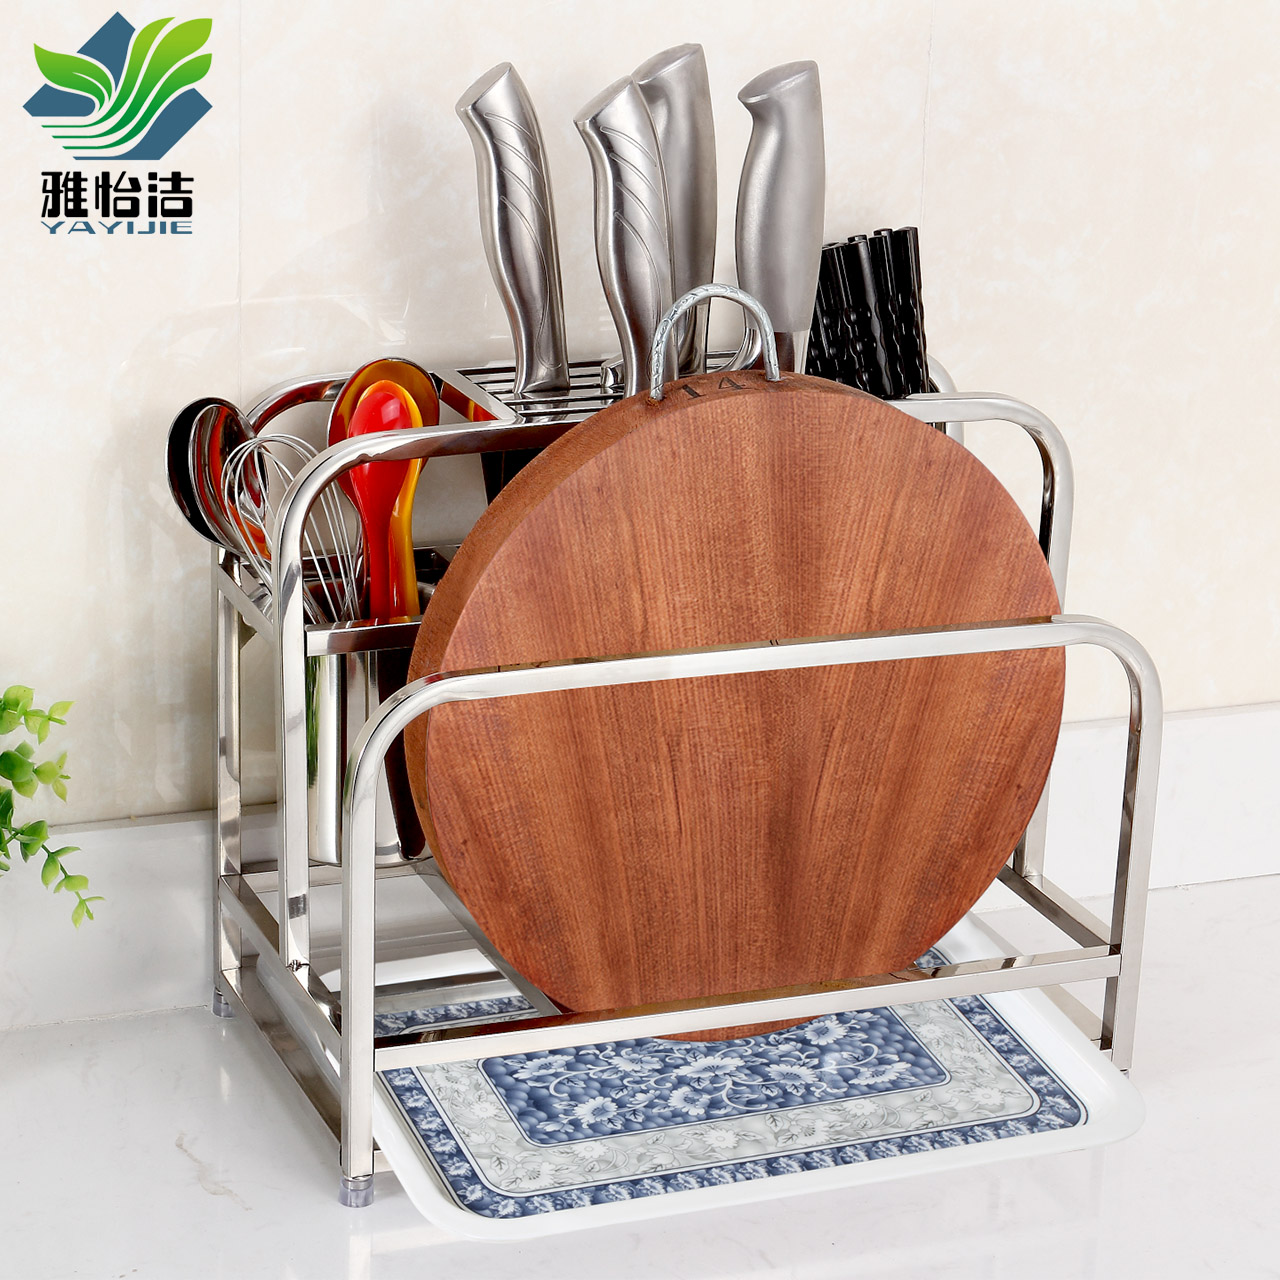 Buy Yi Jie Ya 304 Stainless Steel Kitchen Tool Holder Rack Chopping Block  Cutting Board Rack Kitchen Knife Racks Kitchen Rack Storage Rack Shelving  Aircraft ...